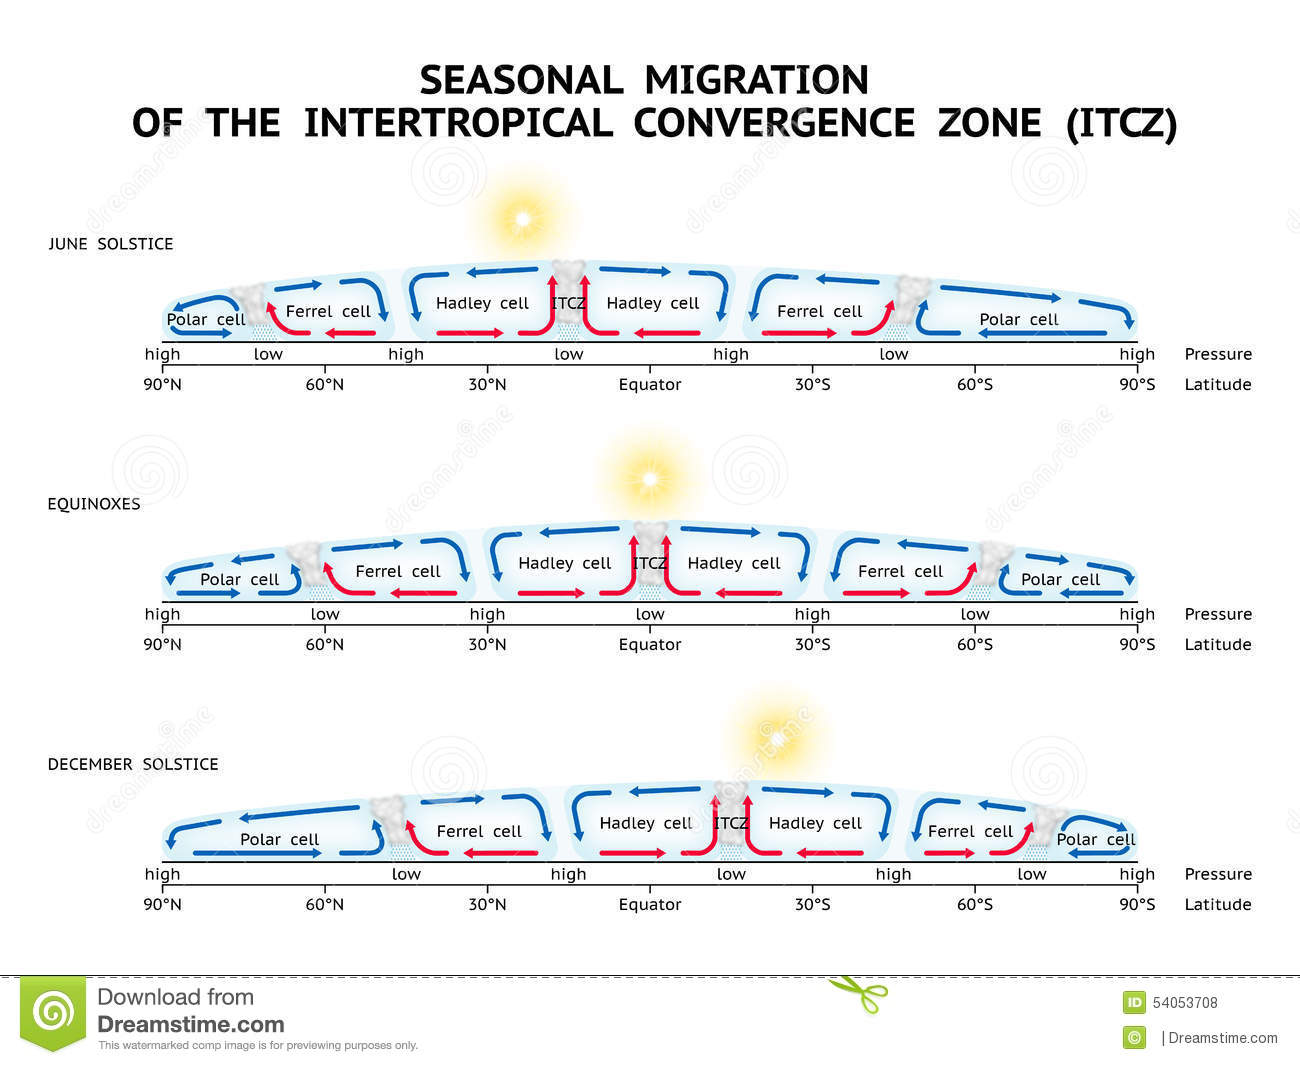 Circulation Patterns Architecture Seasonal Migration Of The Intertropical Convergence Zone